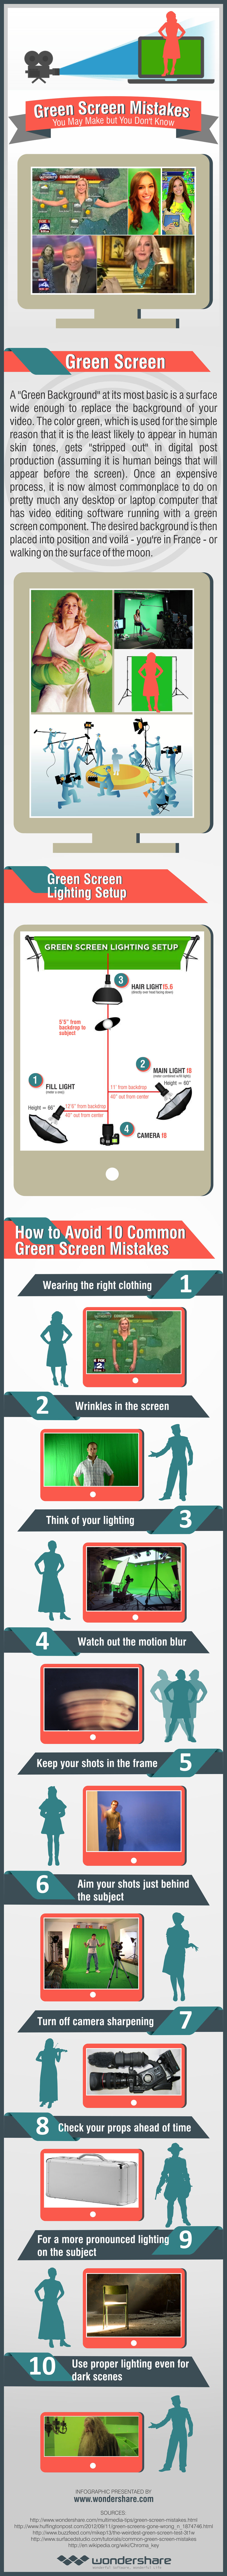 Green Screen Mistakes You May Make But You Don't Know